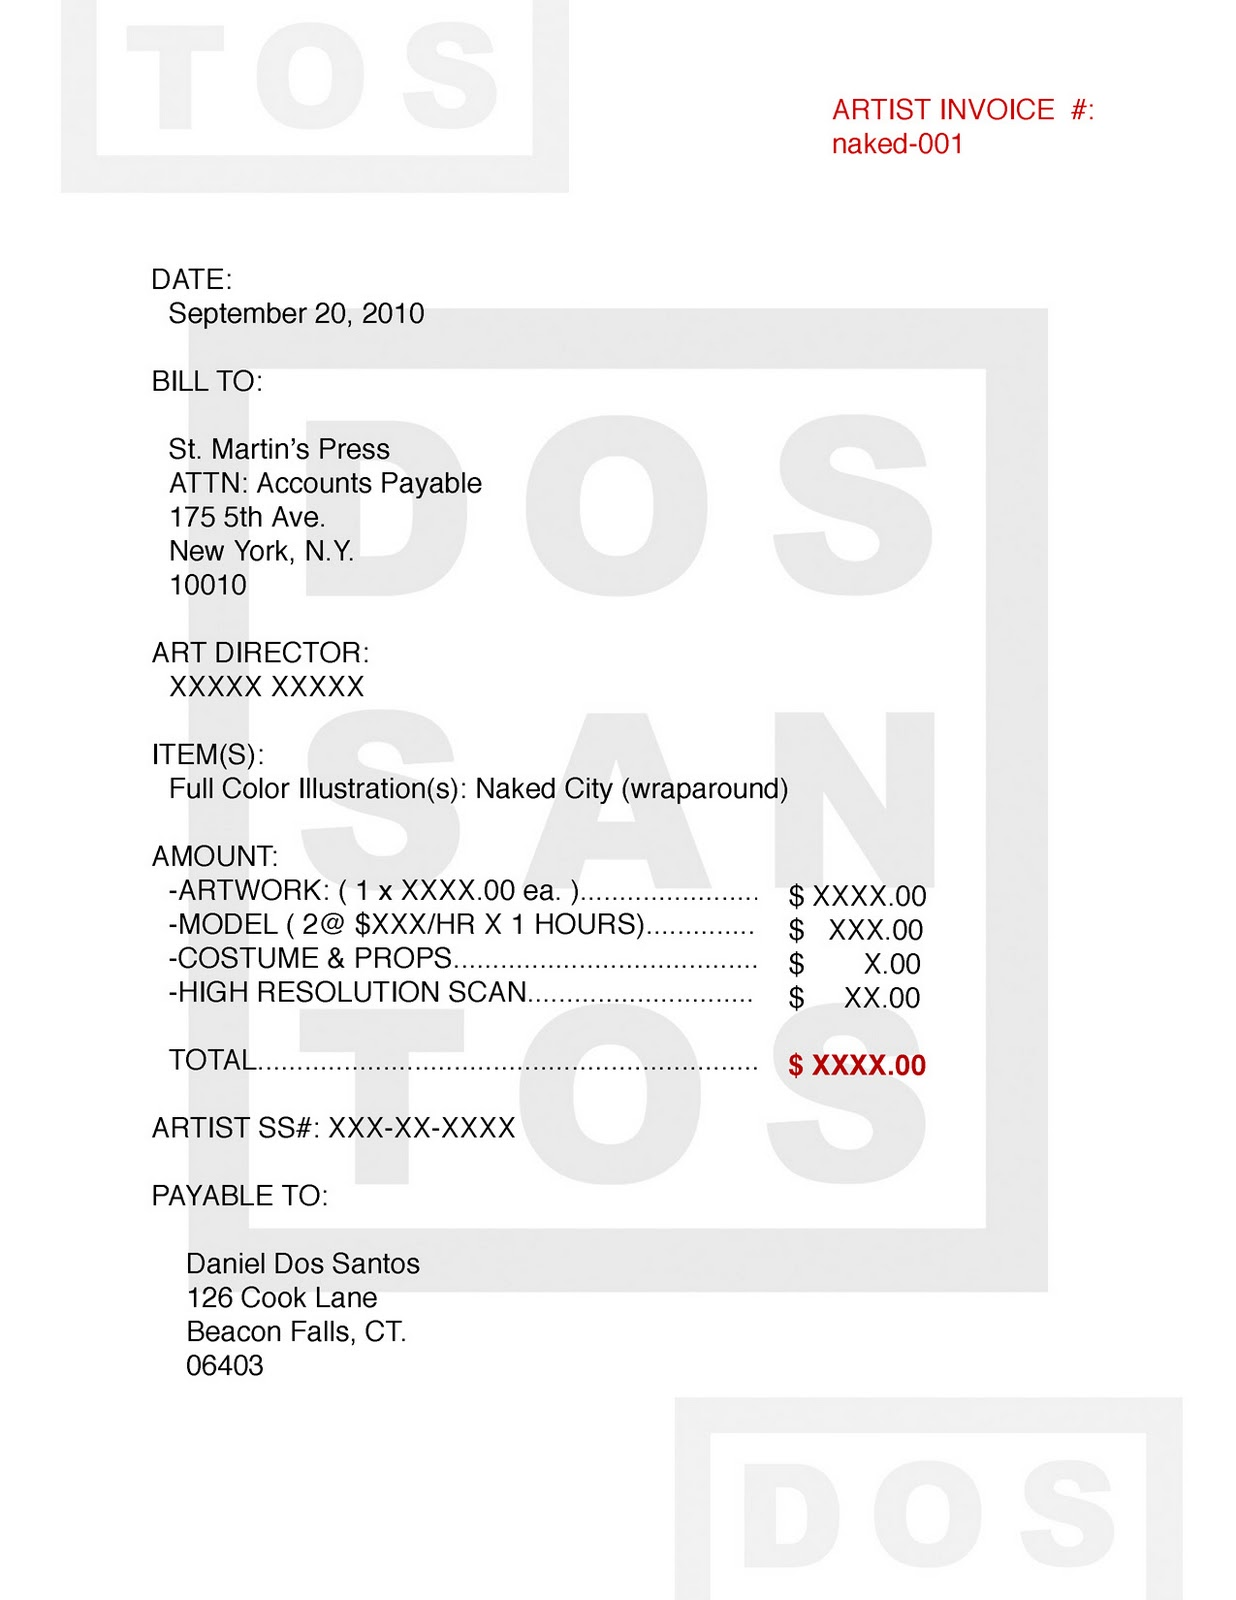 Opposenewapstandardsus  Picturesque Muddy Colors Invoices With Fair I Believe That This Format Contains All The Pertinent Information That A Good Invoice Should Have And Can Serve As A Decent Template For Your Own With Delightful Sample Word Invoice Also Invoice Software Free Download In Addition Boat Invoice And Fedex Ground Commercial Invoice As Well As Mazda Cx  Dealer Invoice Additionally Invoice Freelance Template From Muddycolorsblogspotcom With Opposenewapstandardsus  Fair Muddy Colors Invoices With Delightful I Believe That This Format Contains All The Pertinent Information That A Good Invoice Should Have And Can Serve As A Decent Template For Your Own And Picturesque Sample Word Invoice Also Invoice Software Free Download In Addition Boat Invoice From Muddycolorsblogspotcom